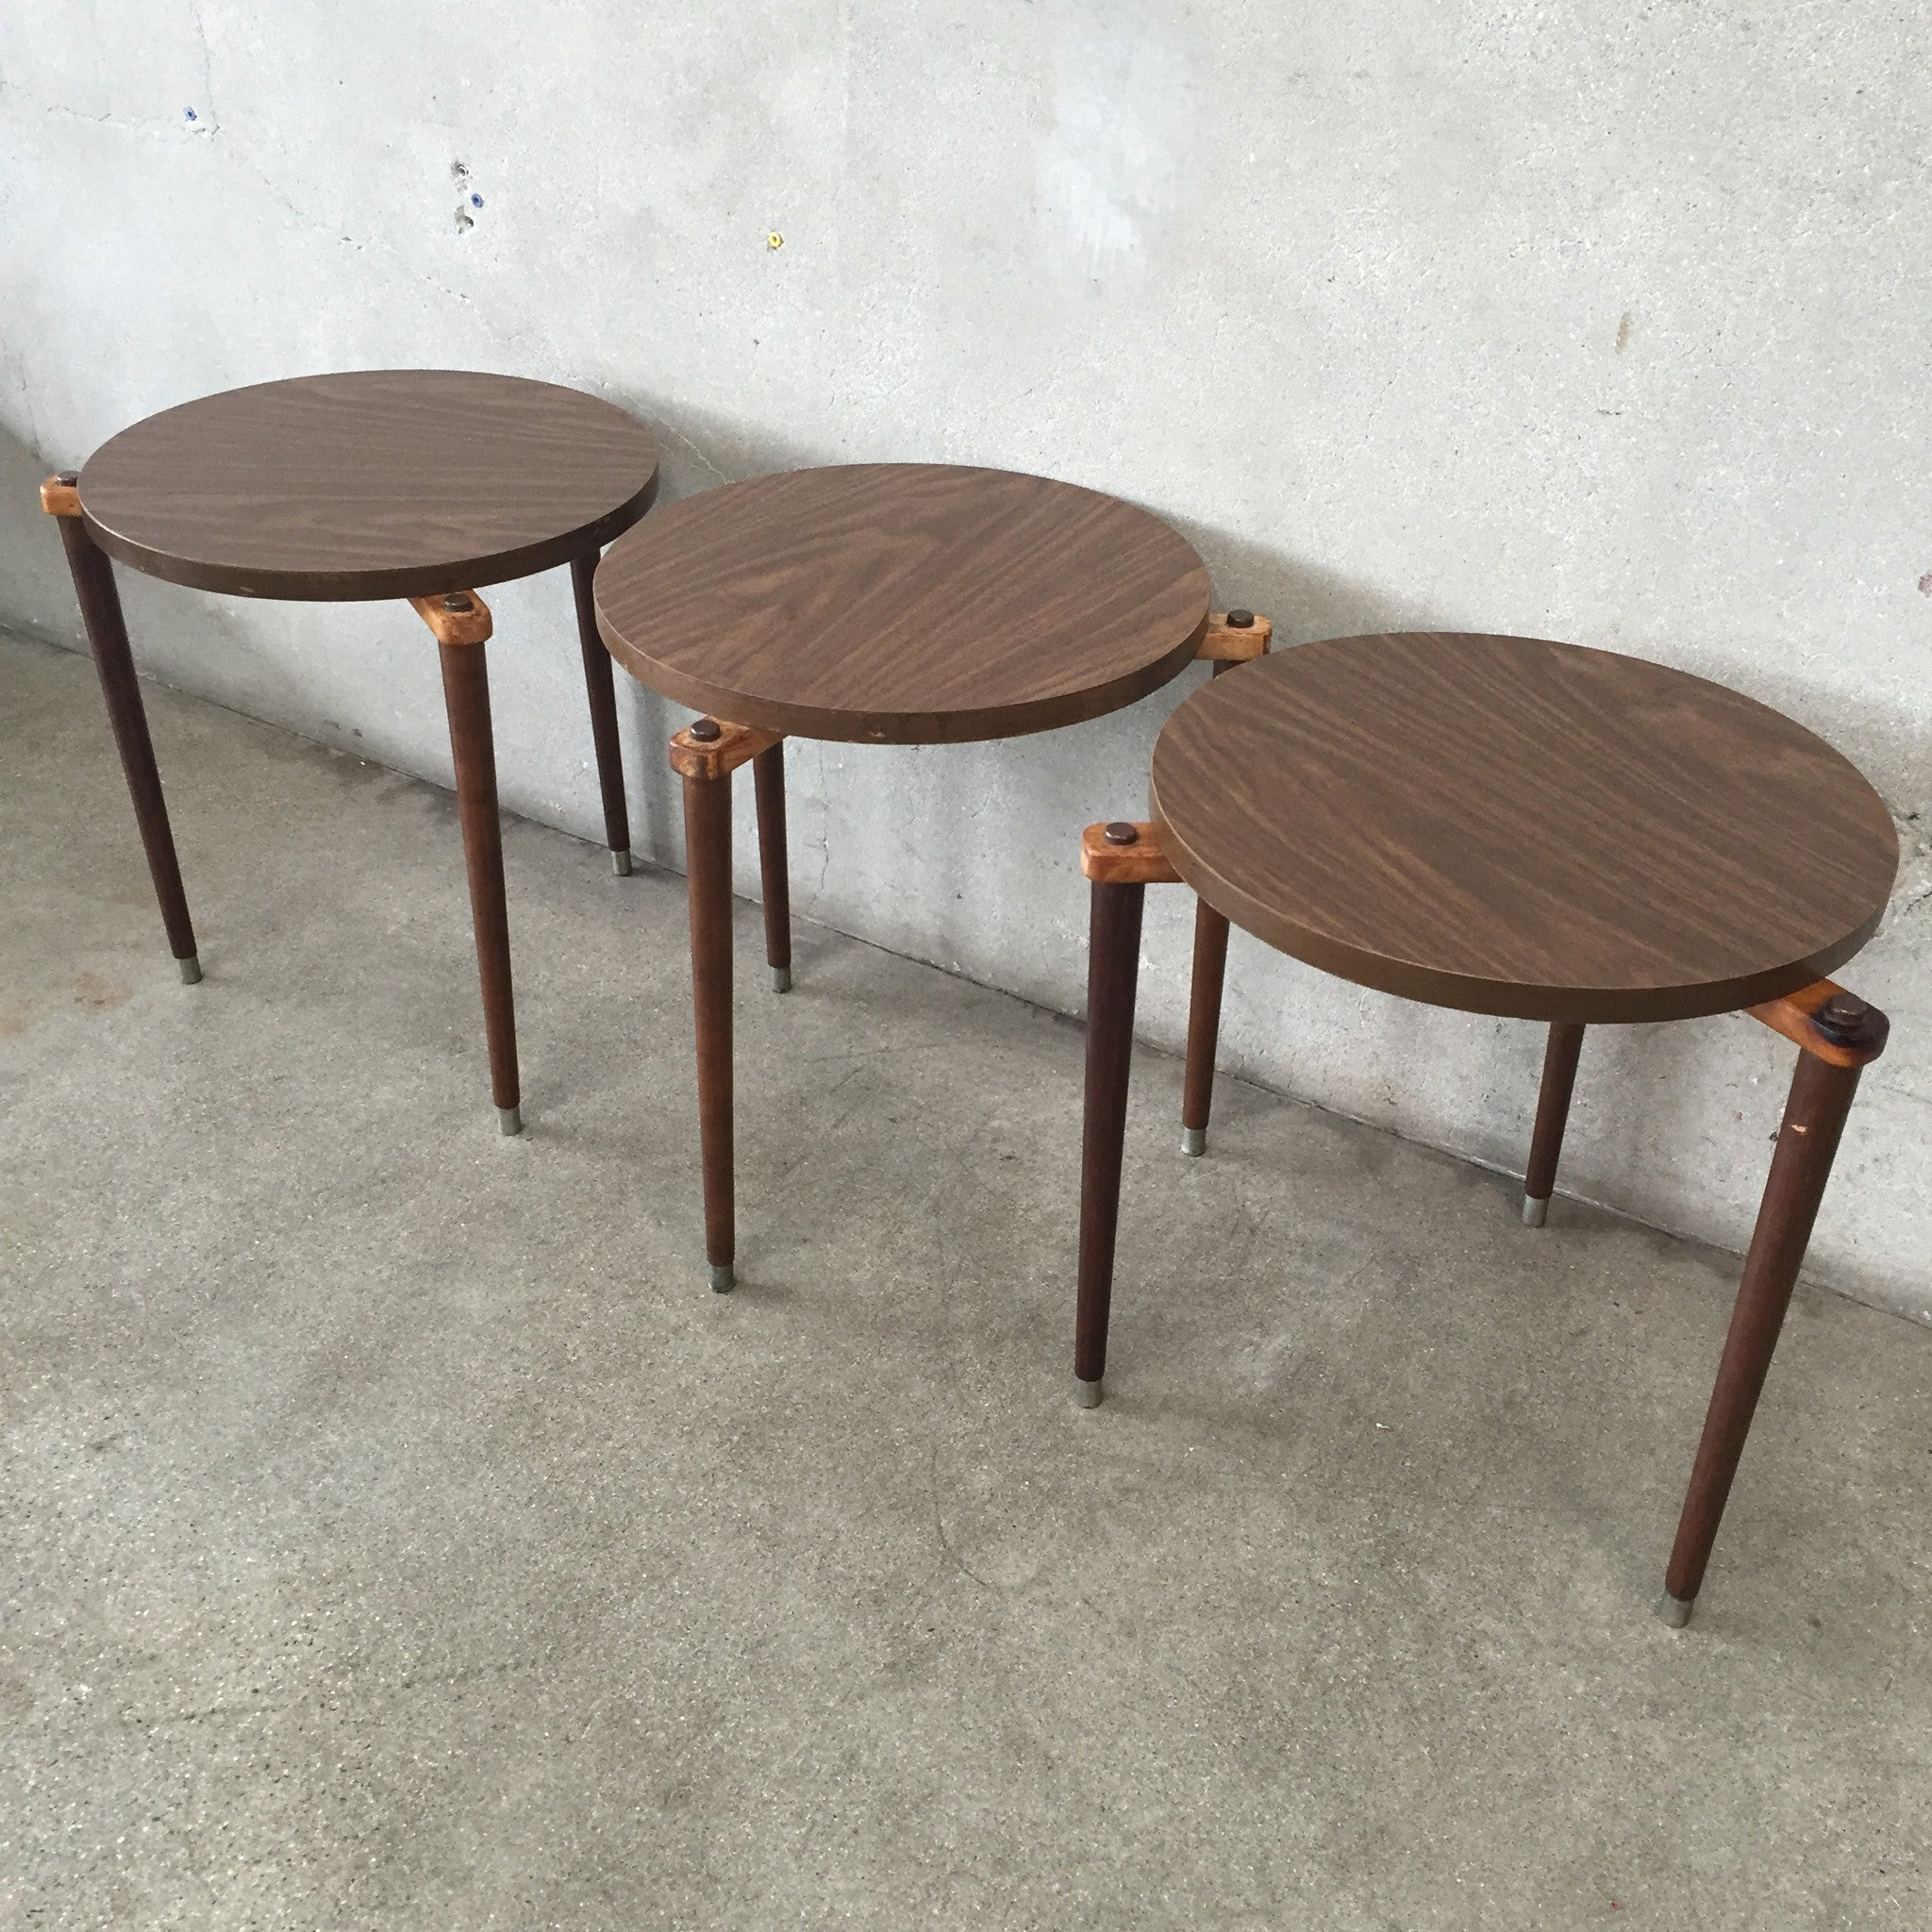 mid century modern stackable tables . mid century modern stackable tables – urbanamericana